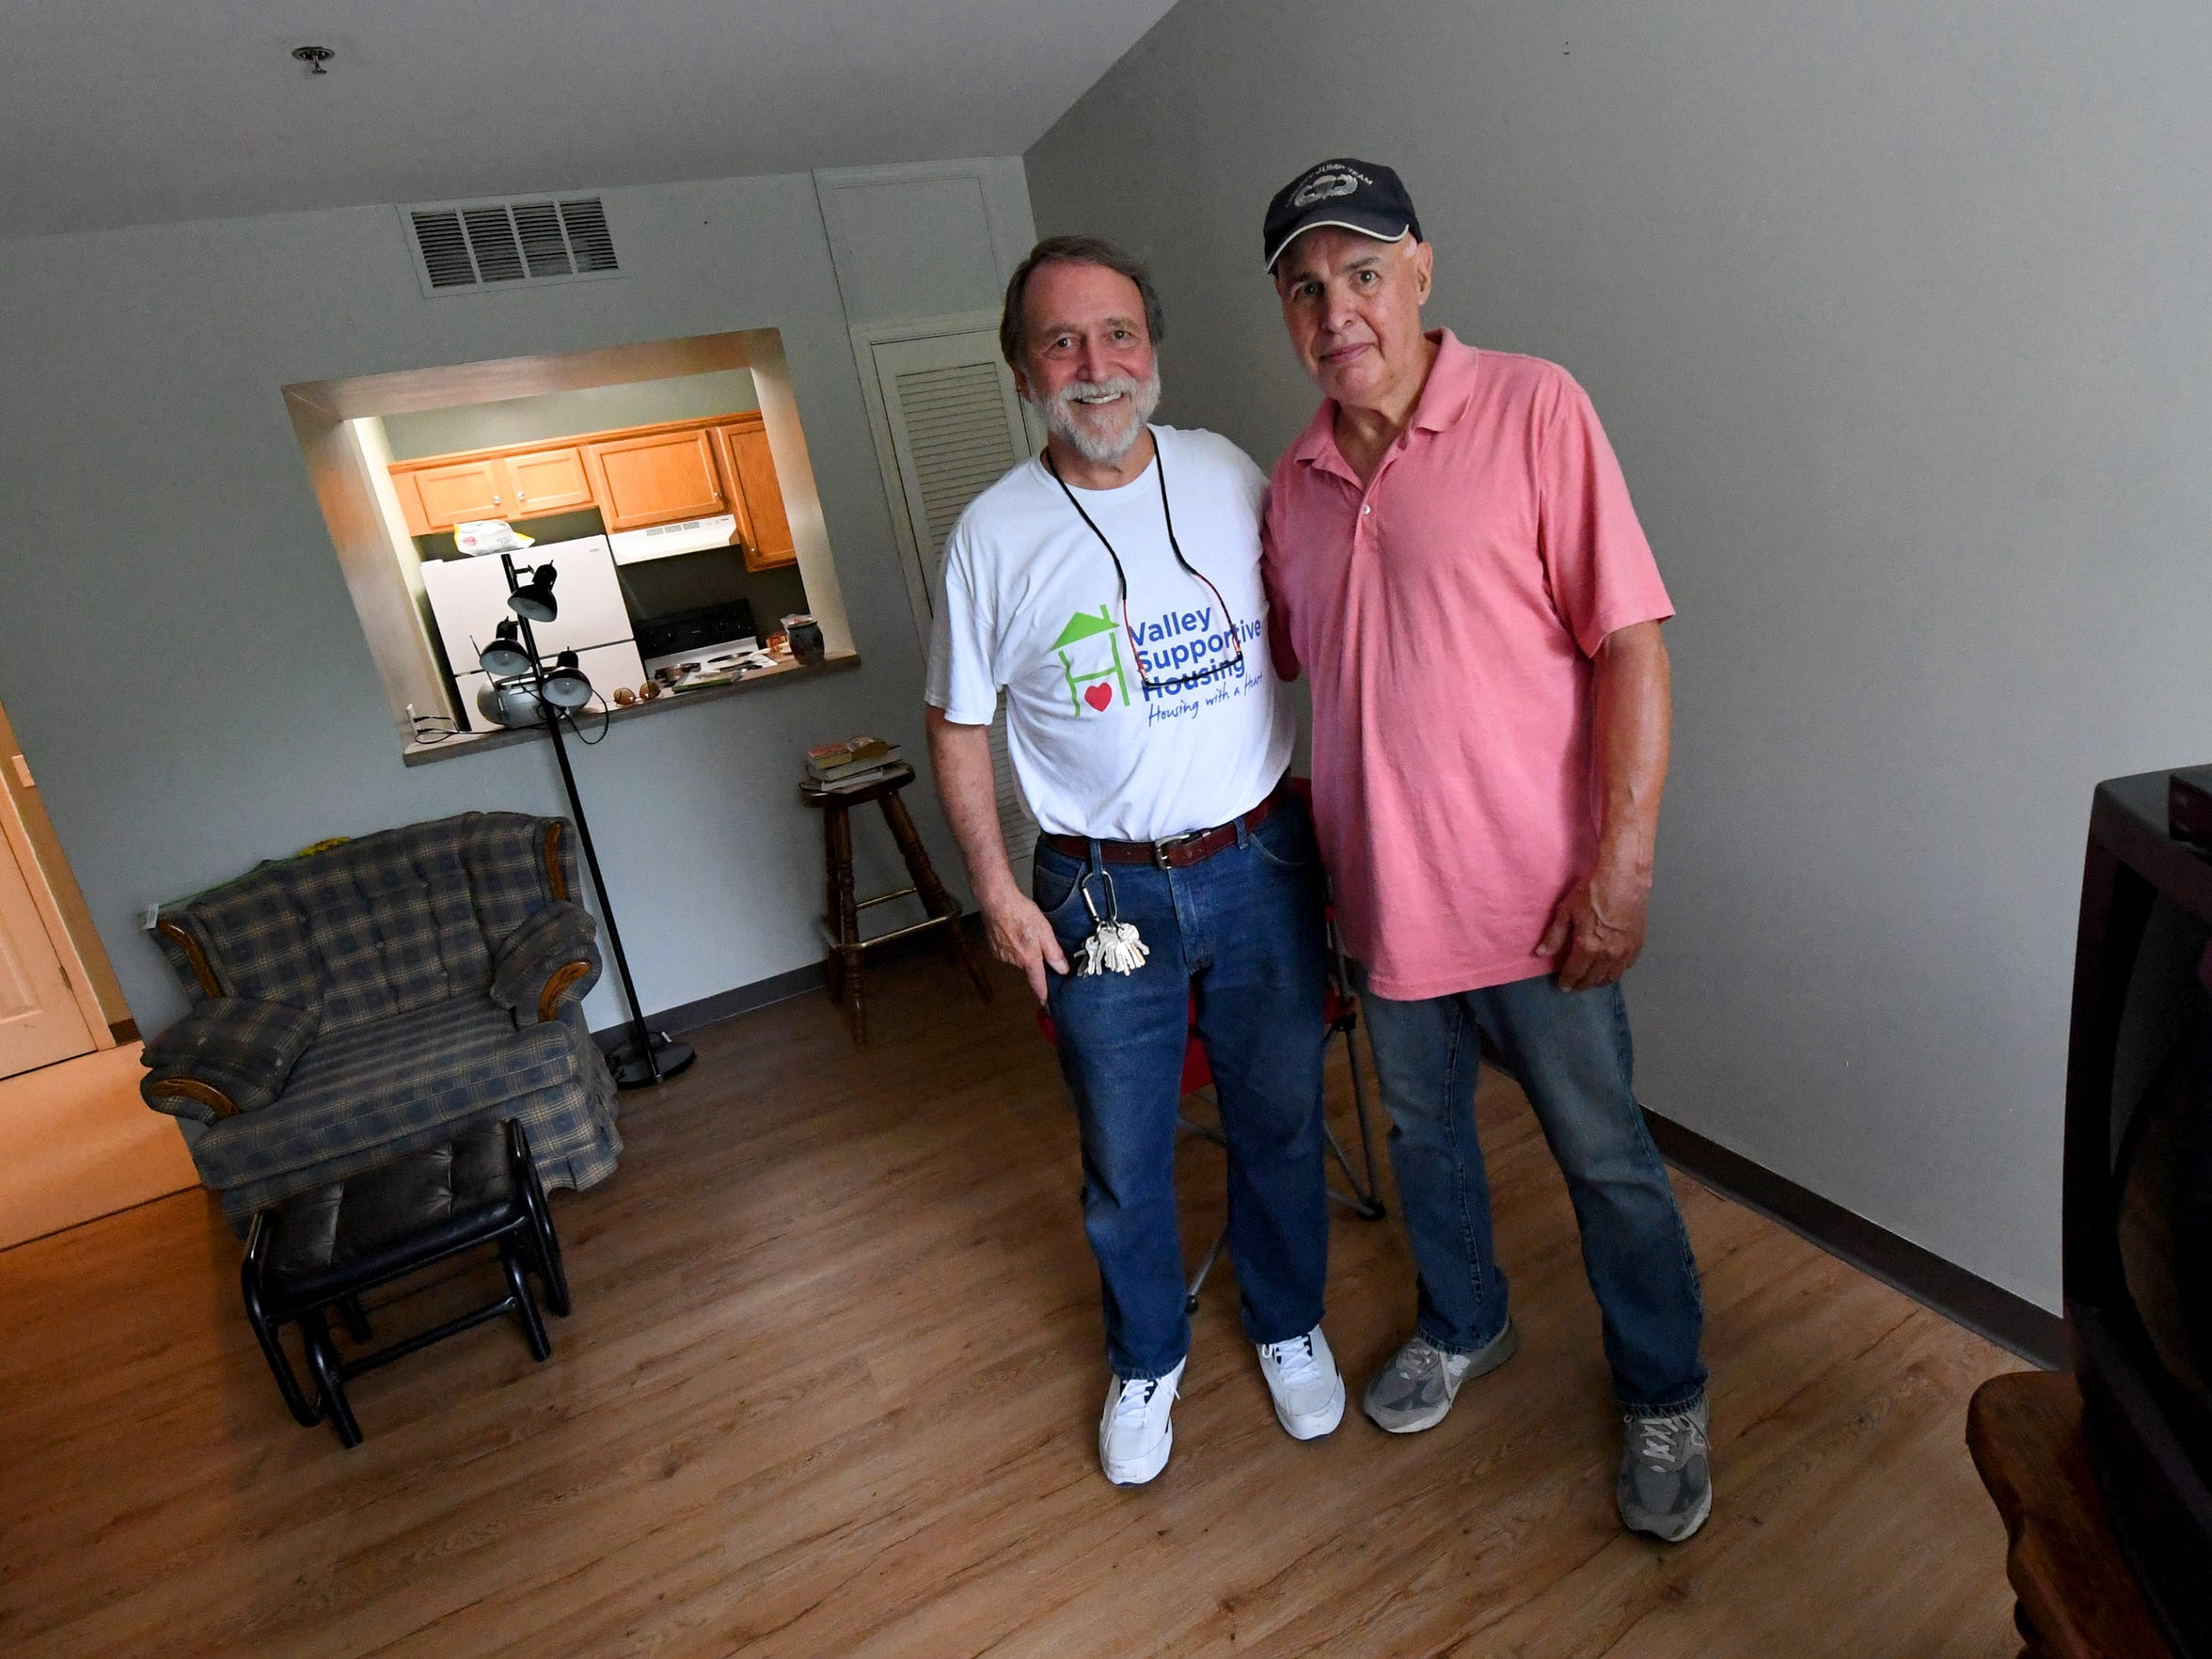 Clark Banta, executive director of Valley Supportive Housing, stands with Jan Craun, a resident already living at the Johnson Street Apartments. They are photographed within Craun's home on Friday, August 3, 2018.